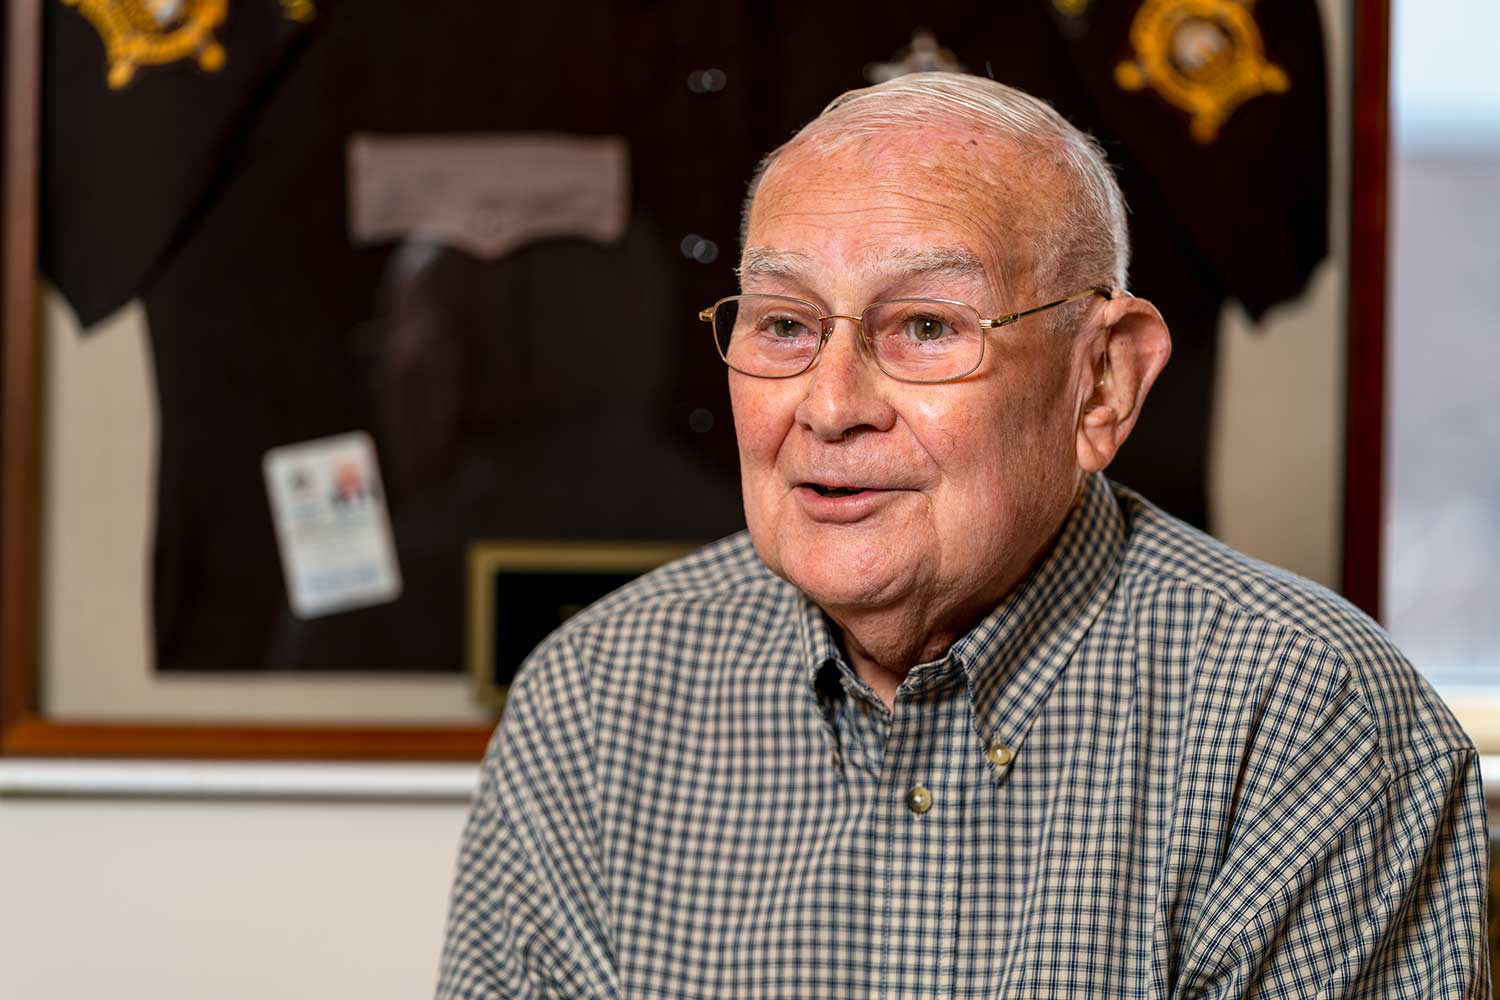 John Sayers began his law enforcement career in 1957. He retired on June 30, 2019.(Photo by Jim Robertson)